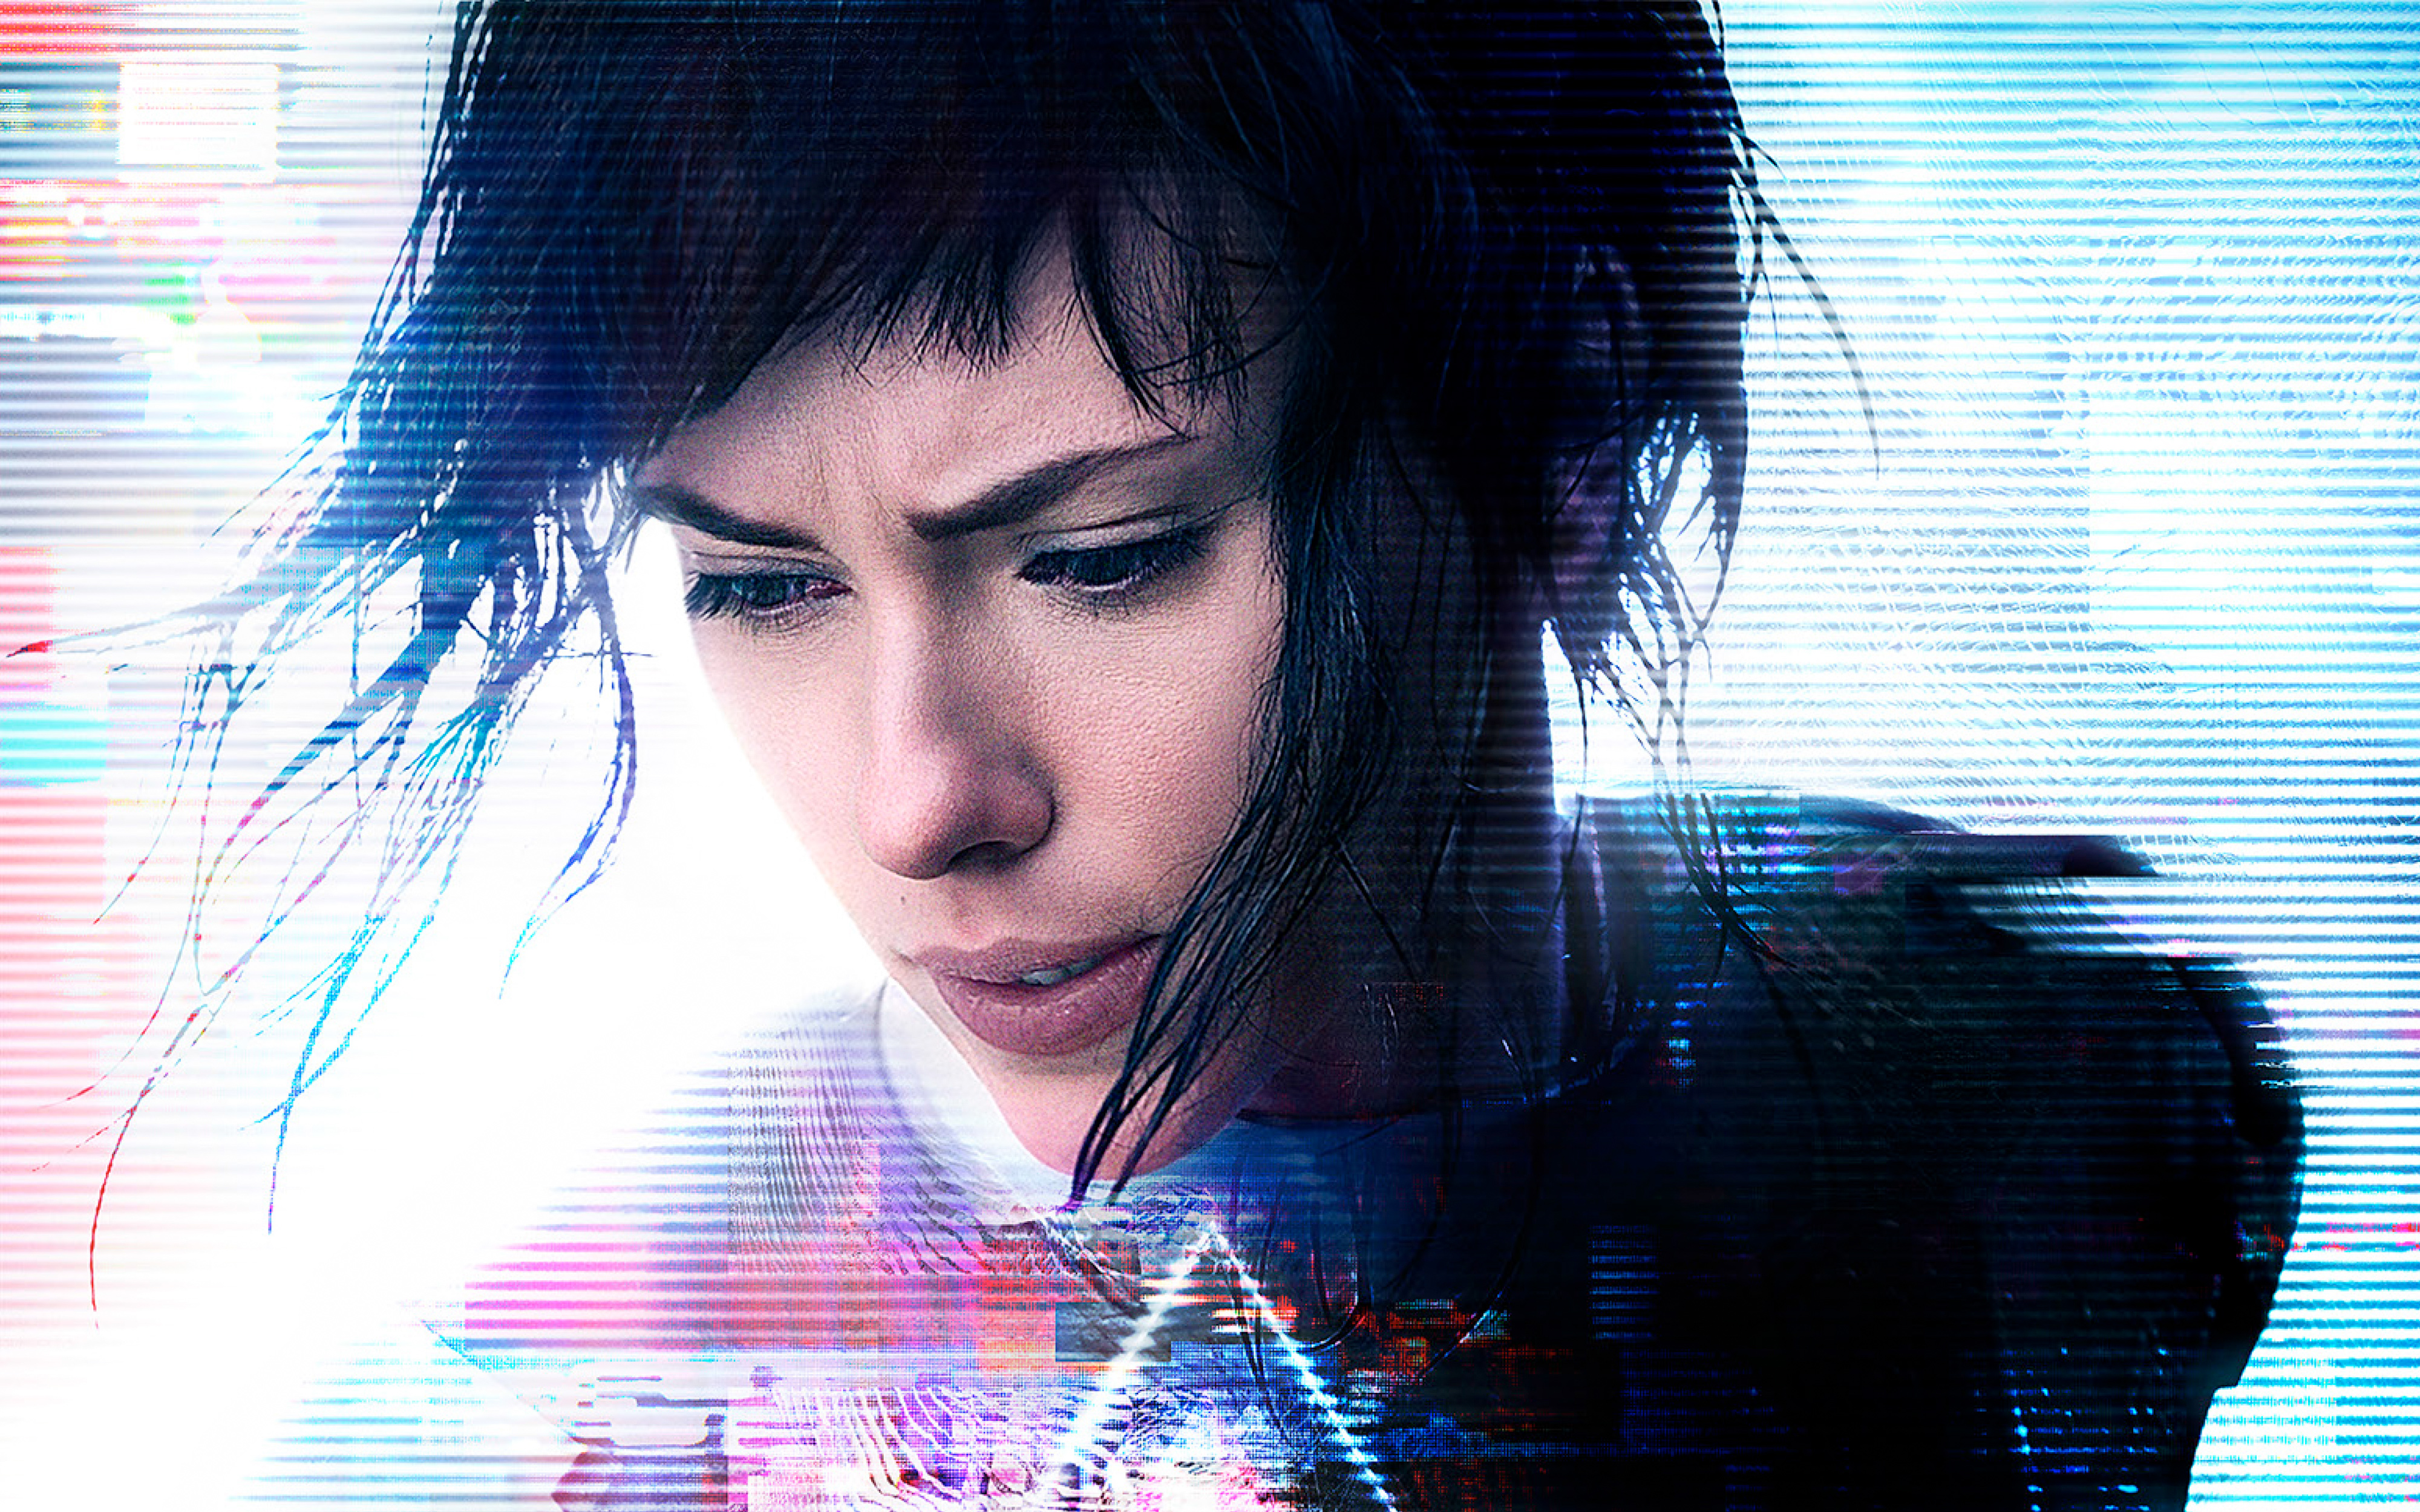 Ghost In The Shell 2017 4k Ultra Hd Wallpaper Background Image